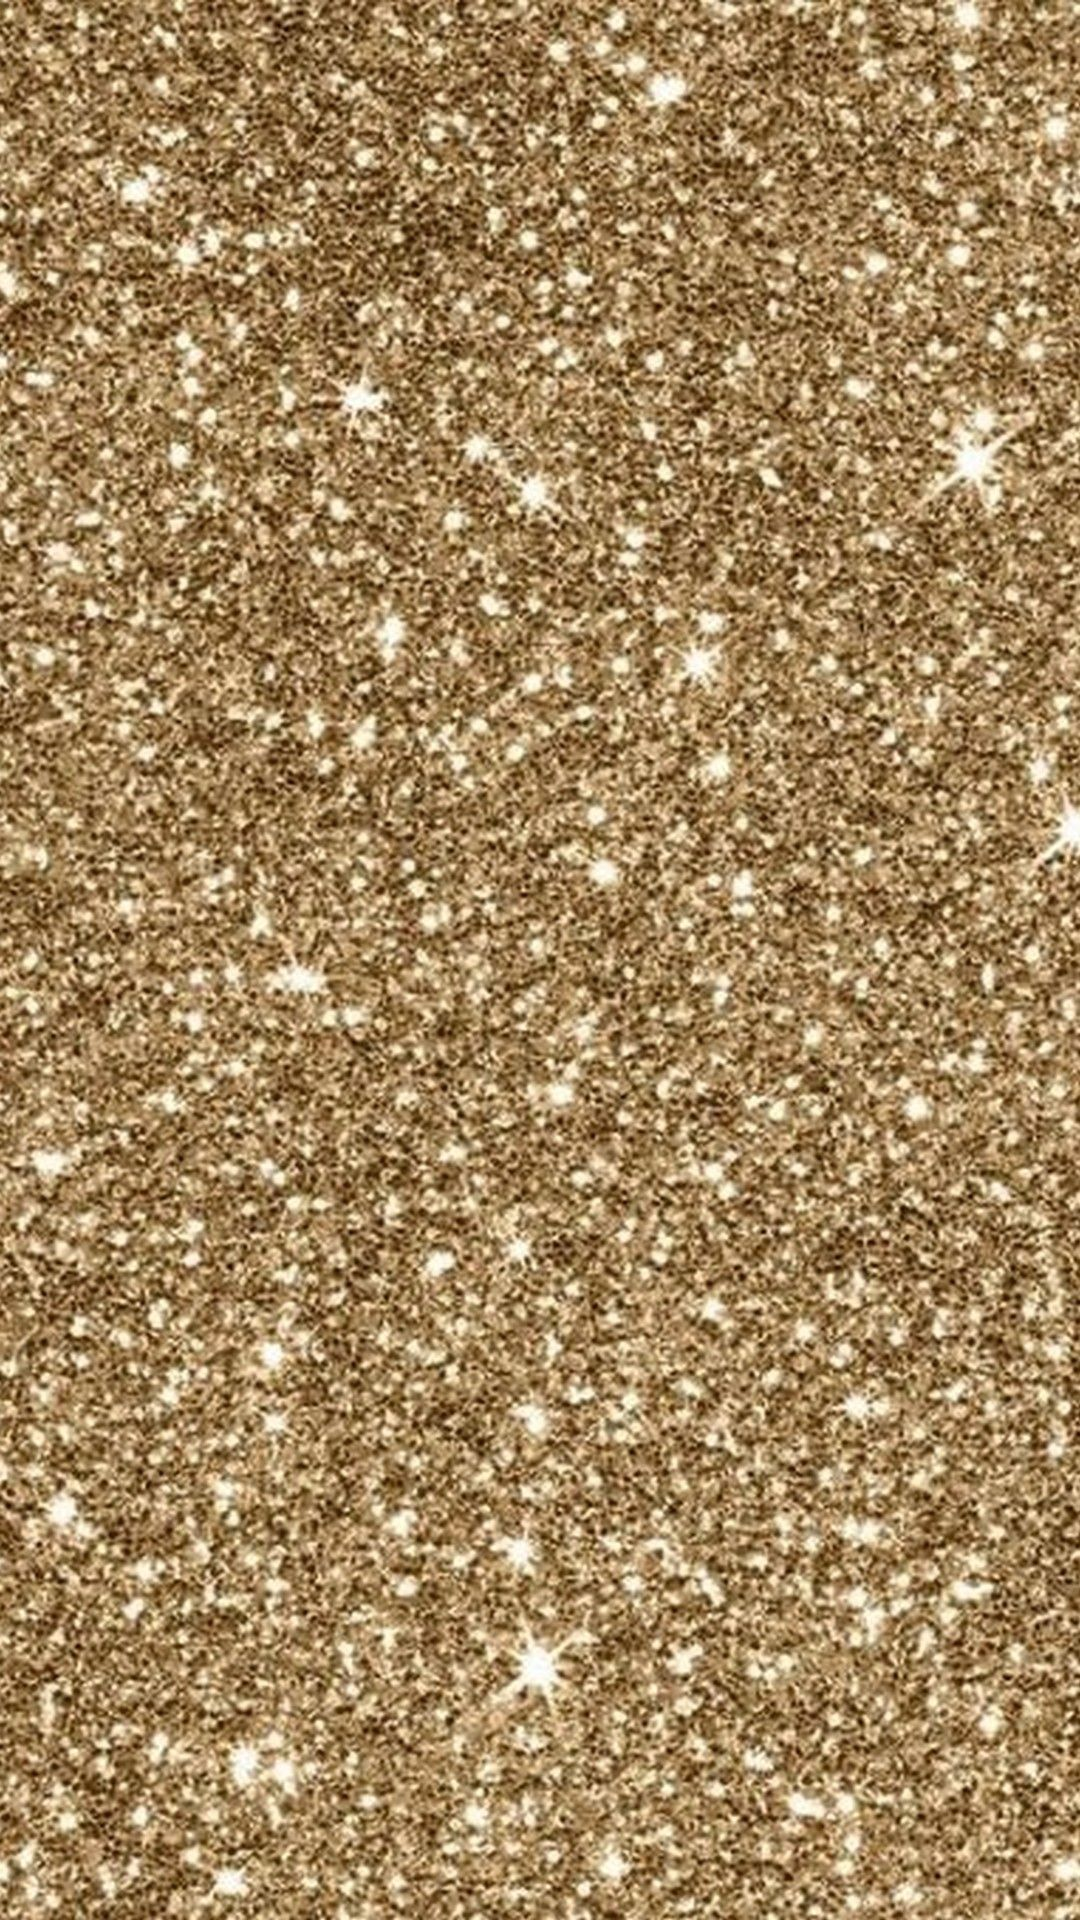 Glitter Wallpapers Iphone Background Hupages Download Iphone Wallpapers Papel De Parede Com Brilho Papel De Parede Gliter Papel De Parede De Ouro